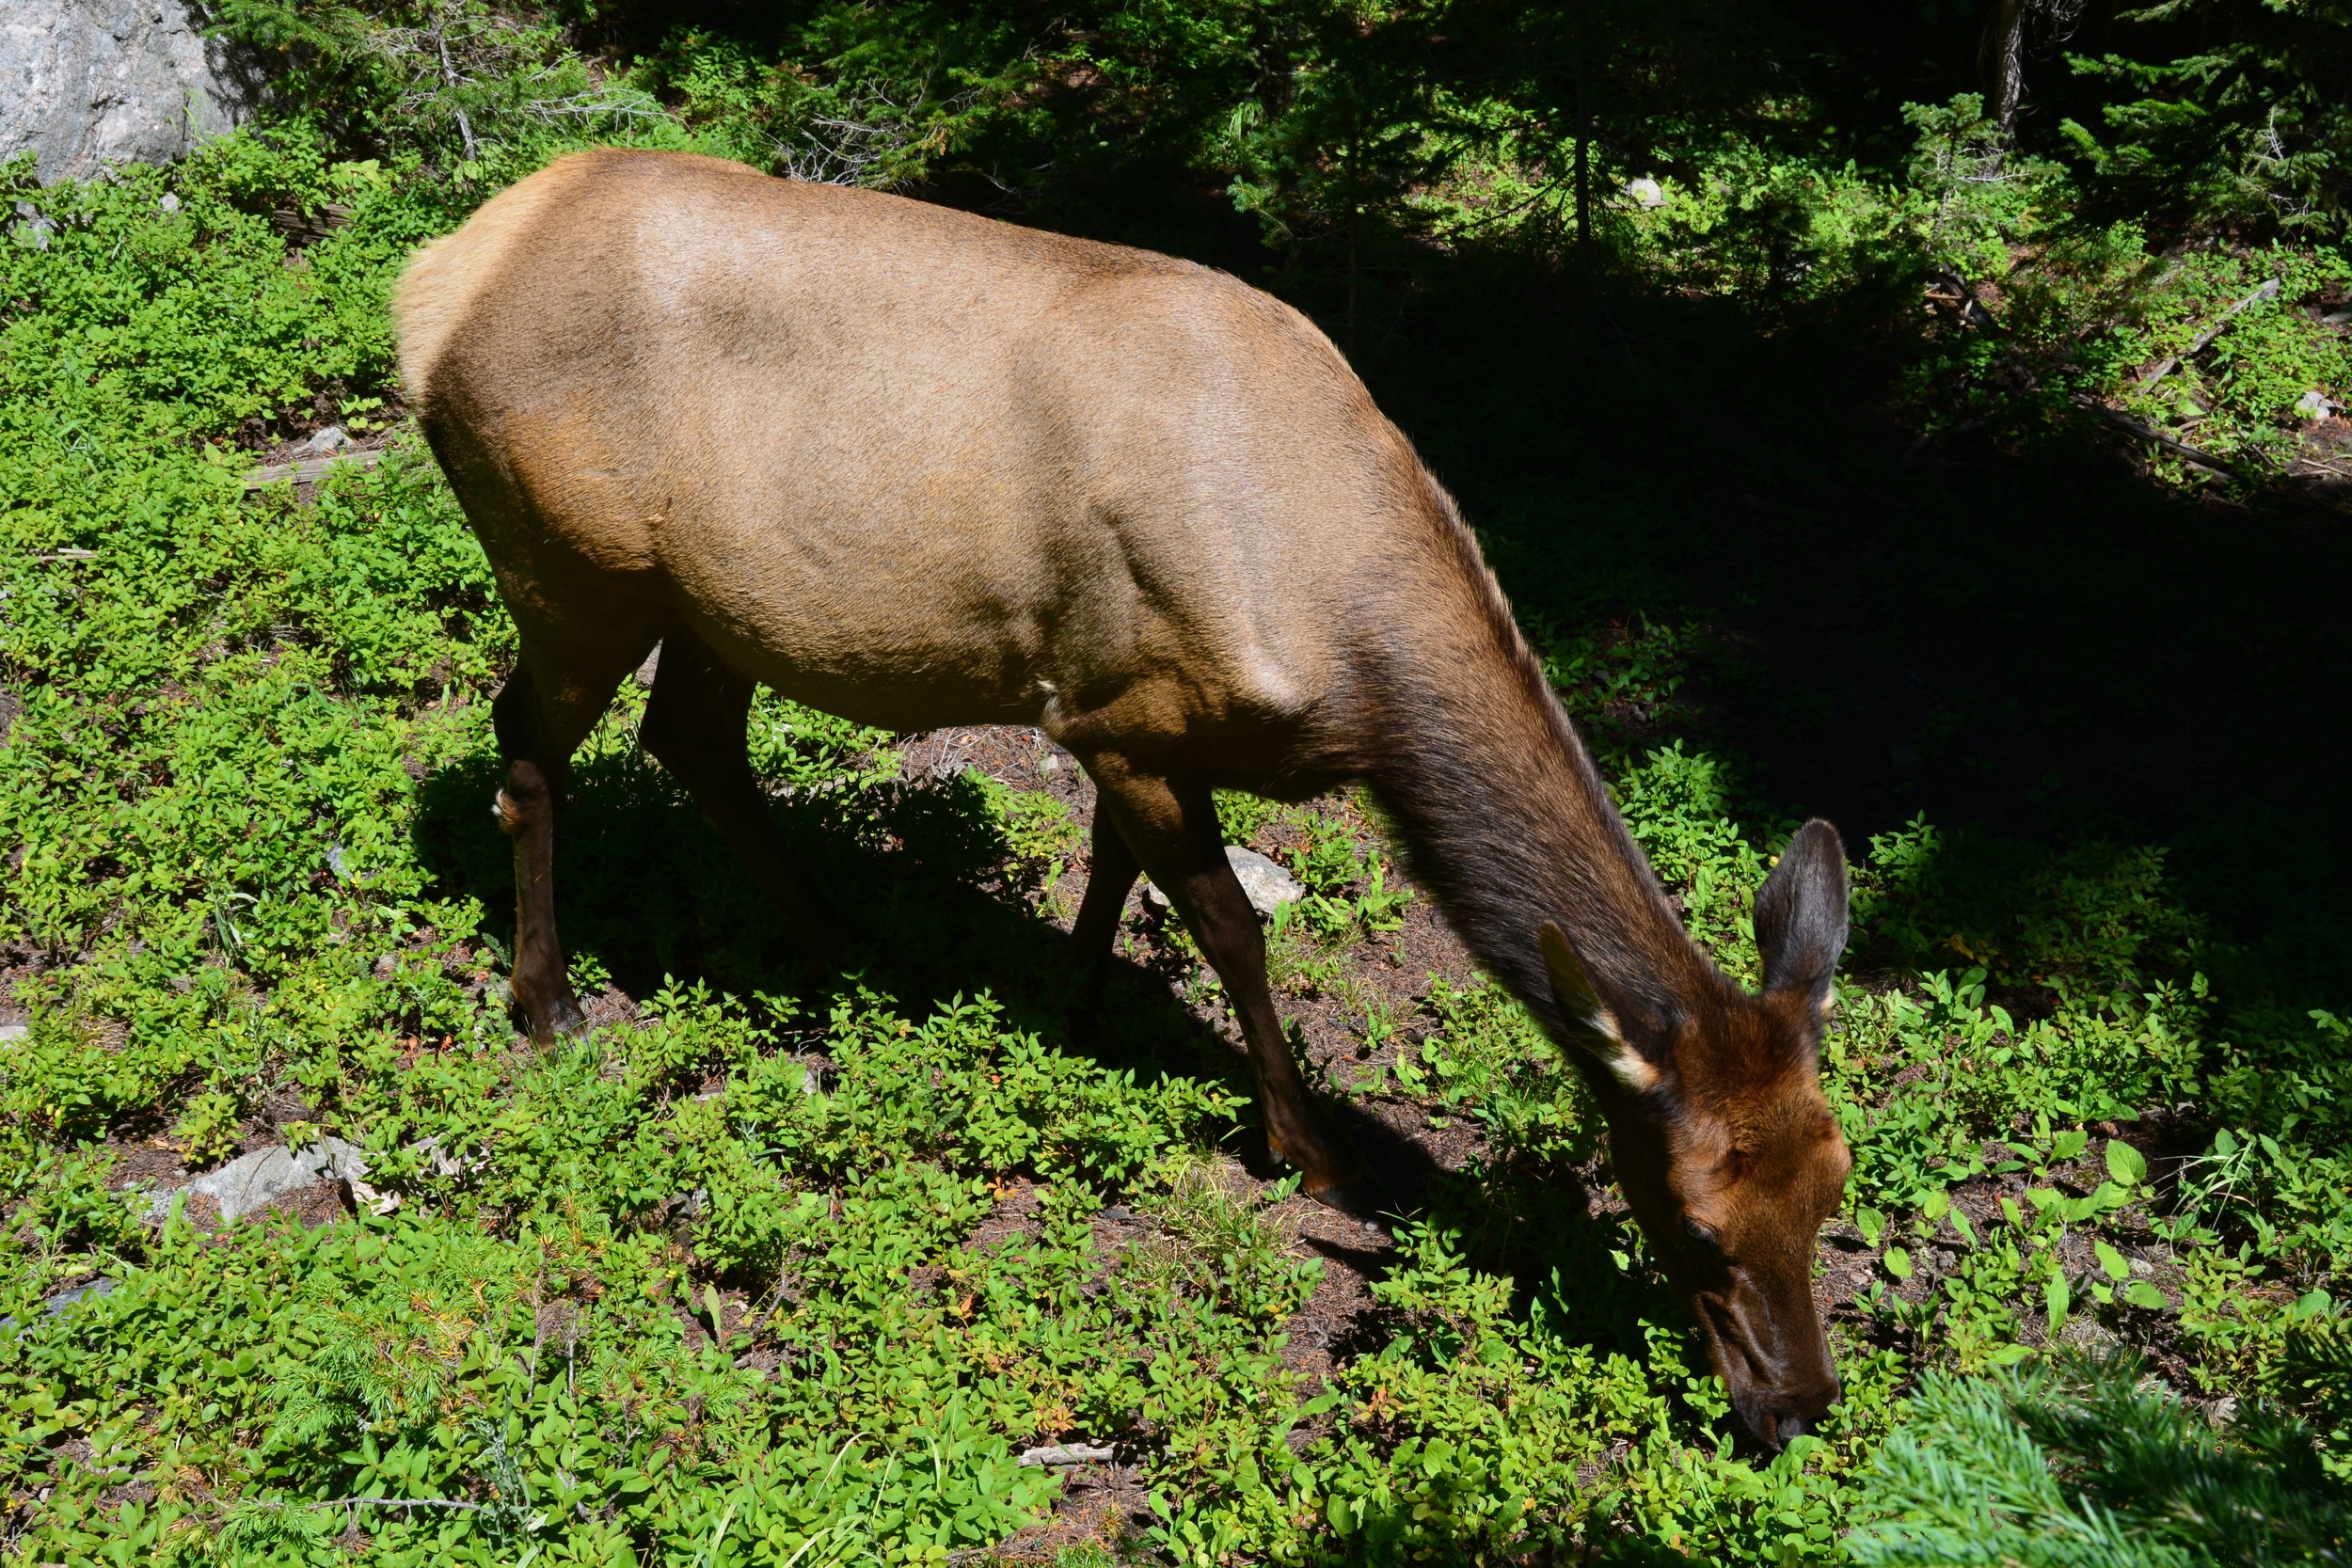 We saw about 4 wild elk doe on our hike. This picture was taken without any zoom - I was really that close!